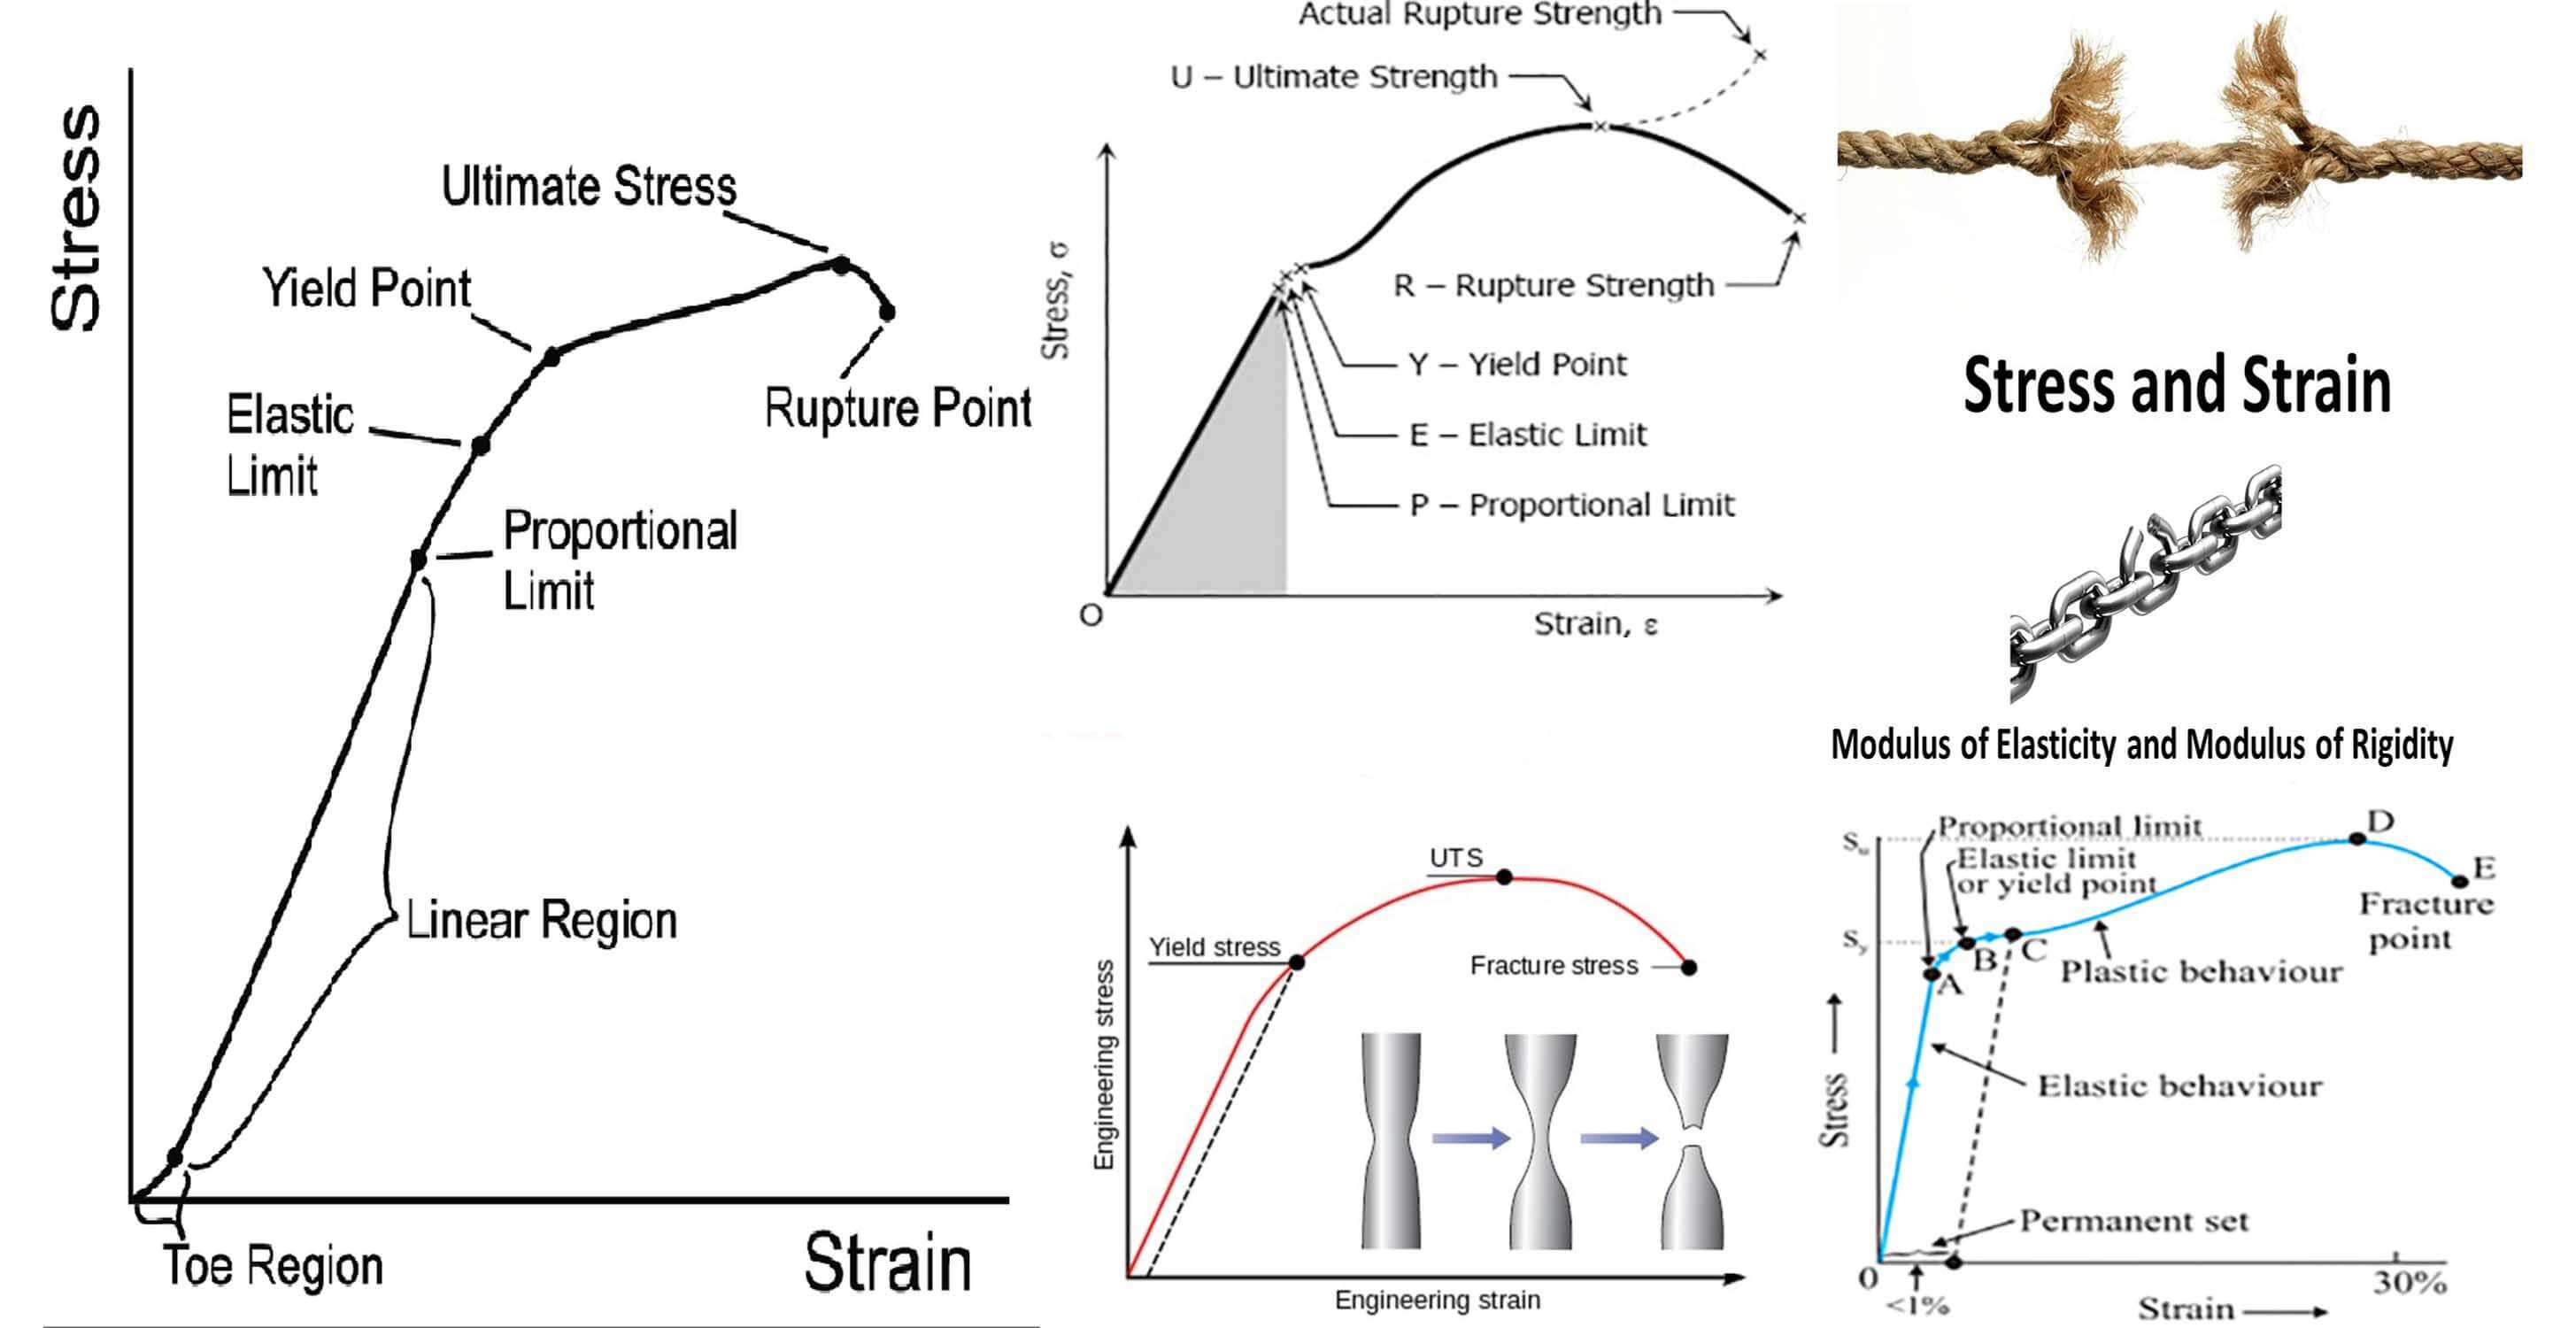 Brief Description About Stress And Strain Diagram